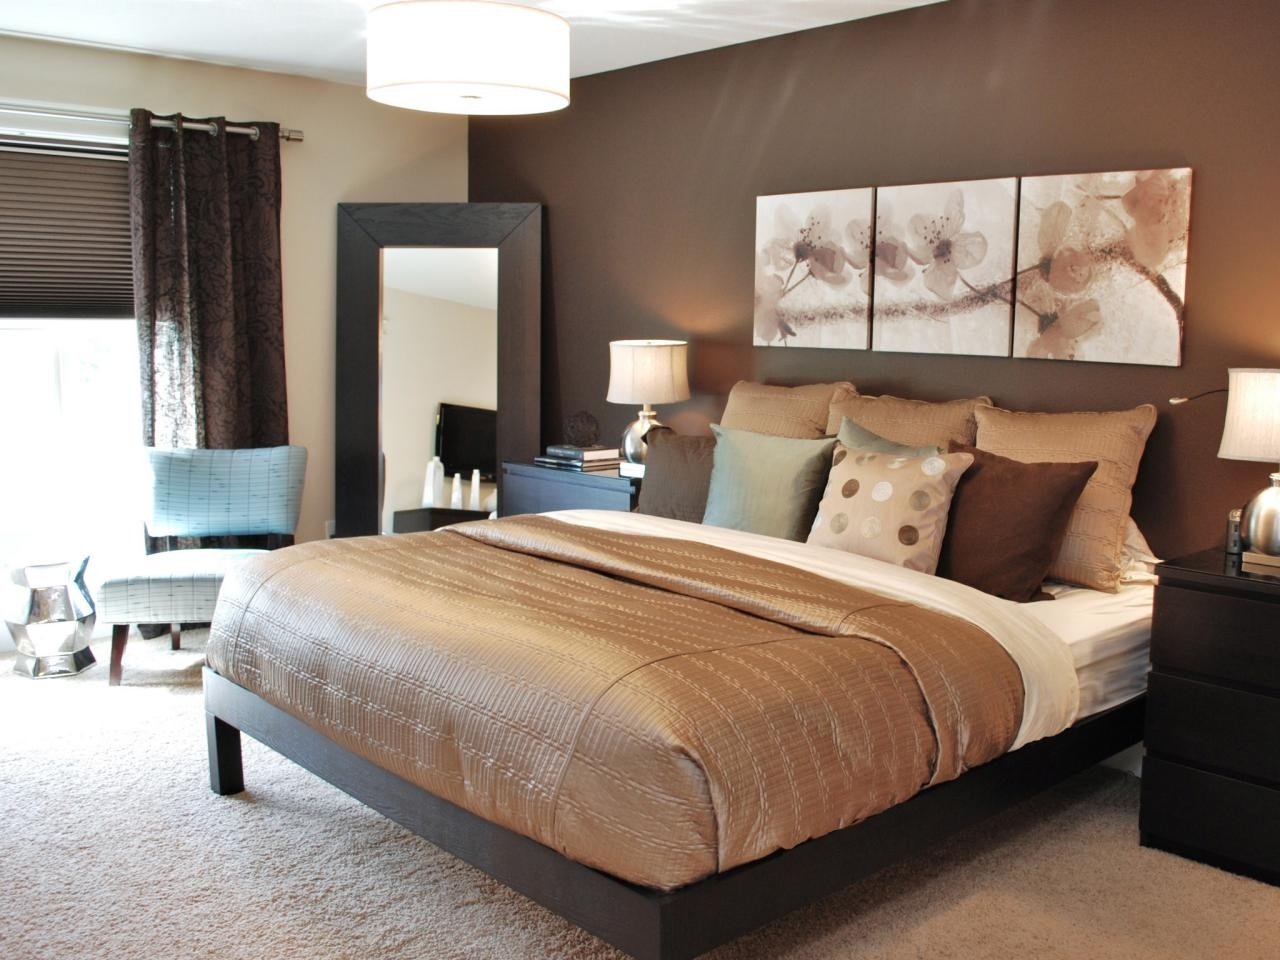 10 Most Recommended Wall Color Ideas For Bedroom %name 2021